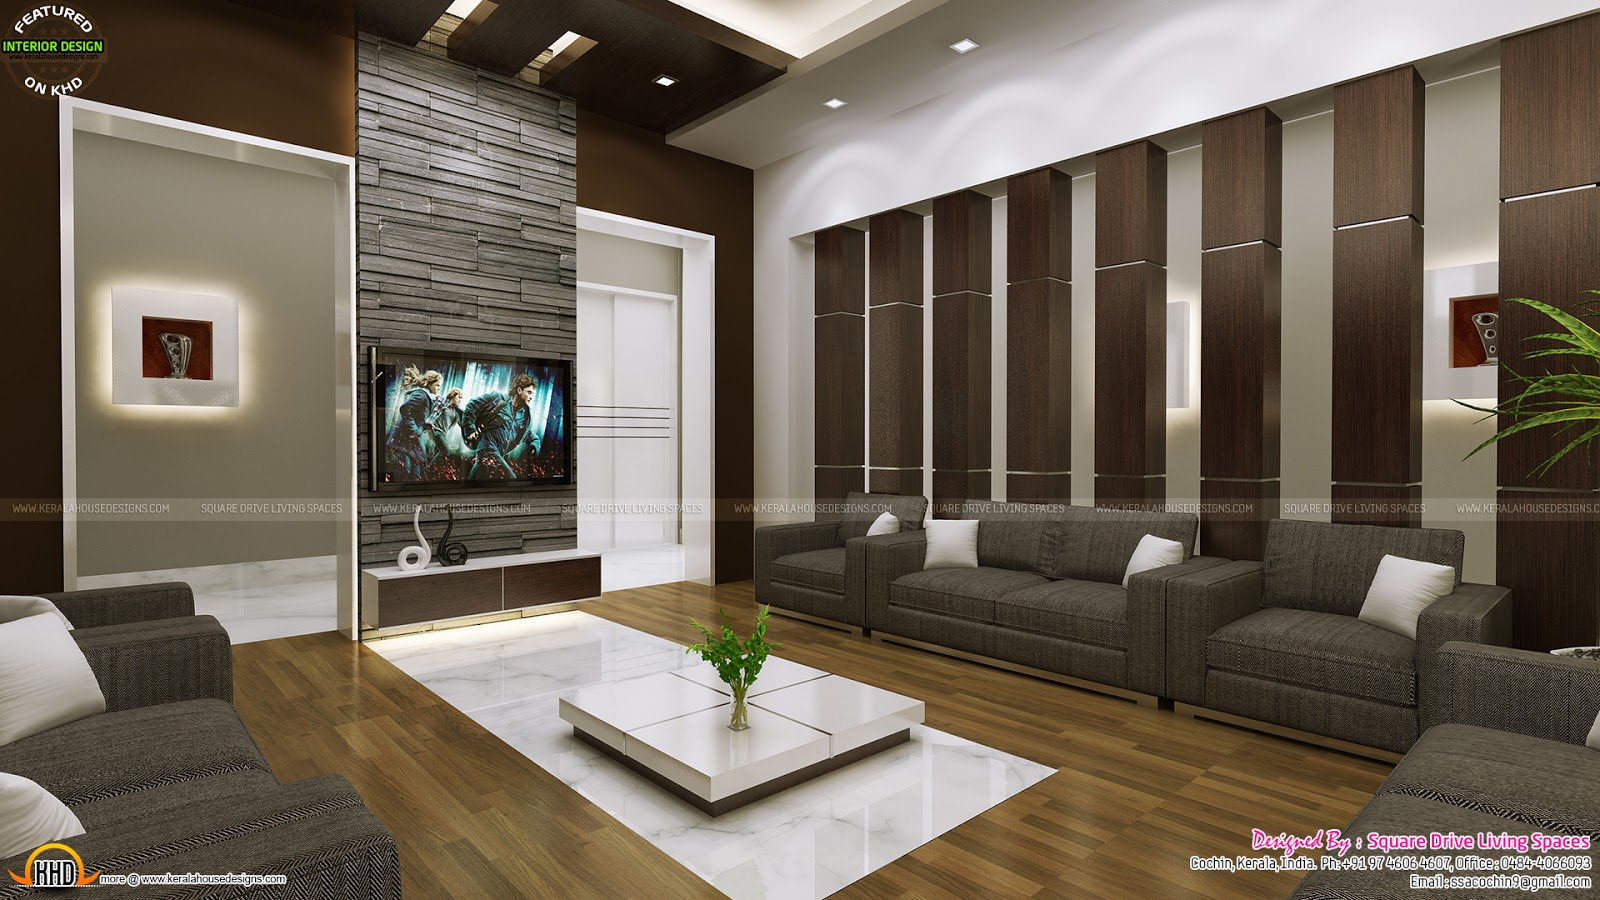 Attractive home interior ideas kerala home design and floor plans - Home interiors living room ...